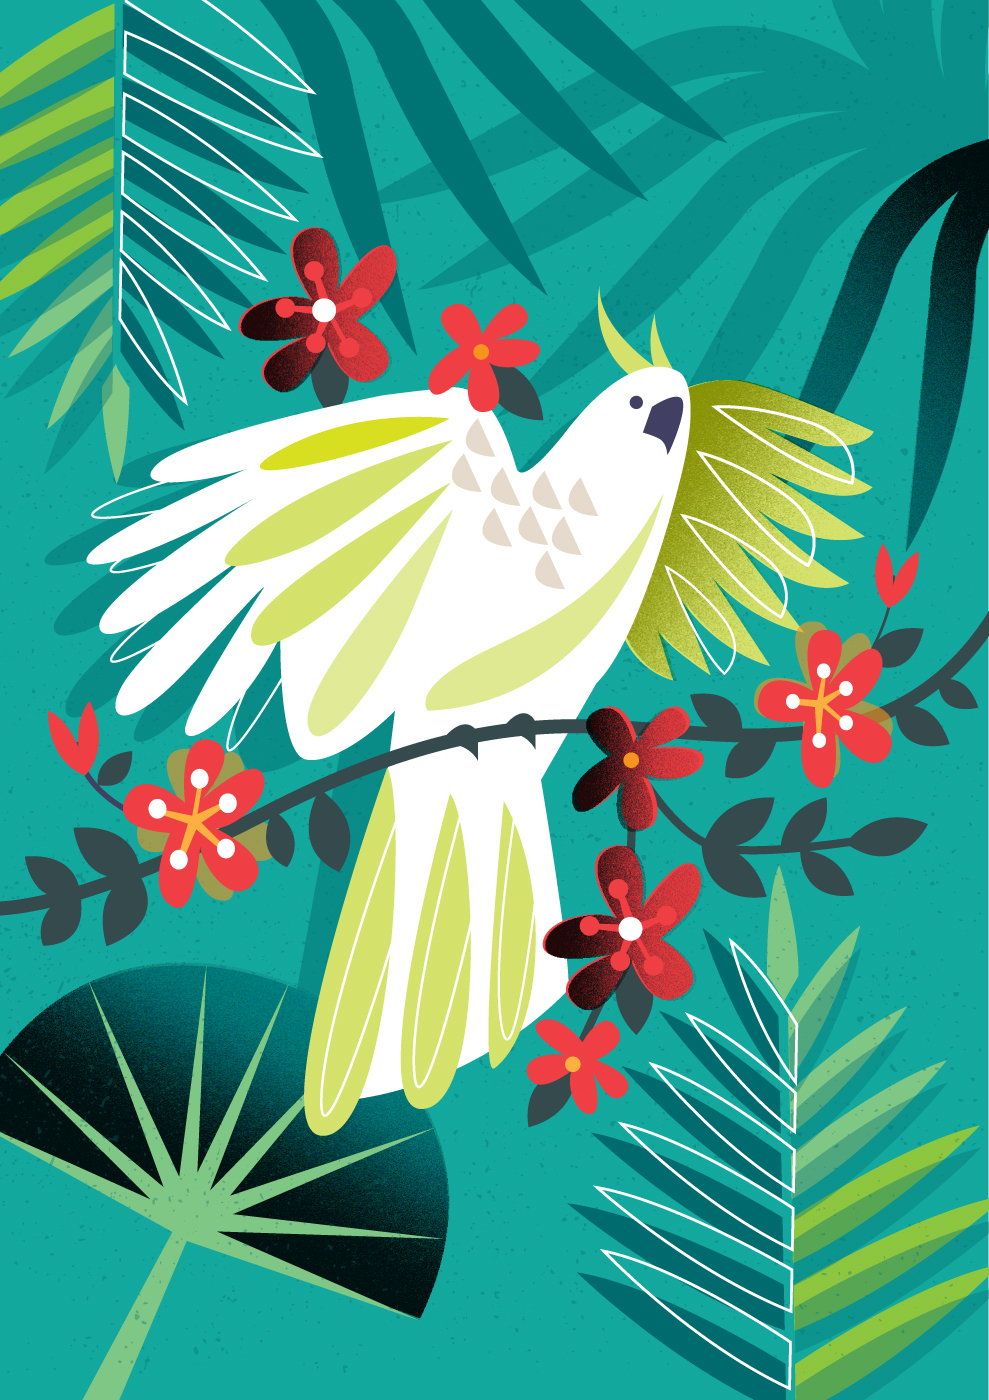 Above: Beautiful and precious, our wildlife. An illustration created by Amanda Shufflebotham, courtesy of Advocate Art.